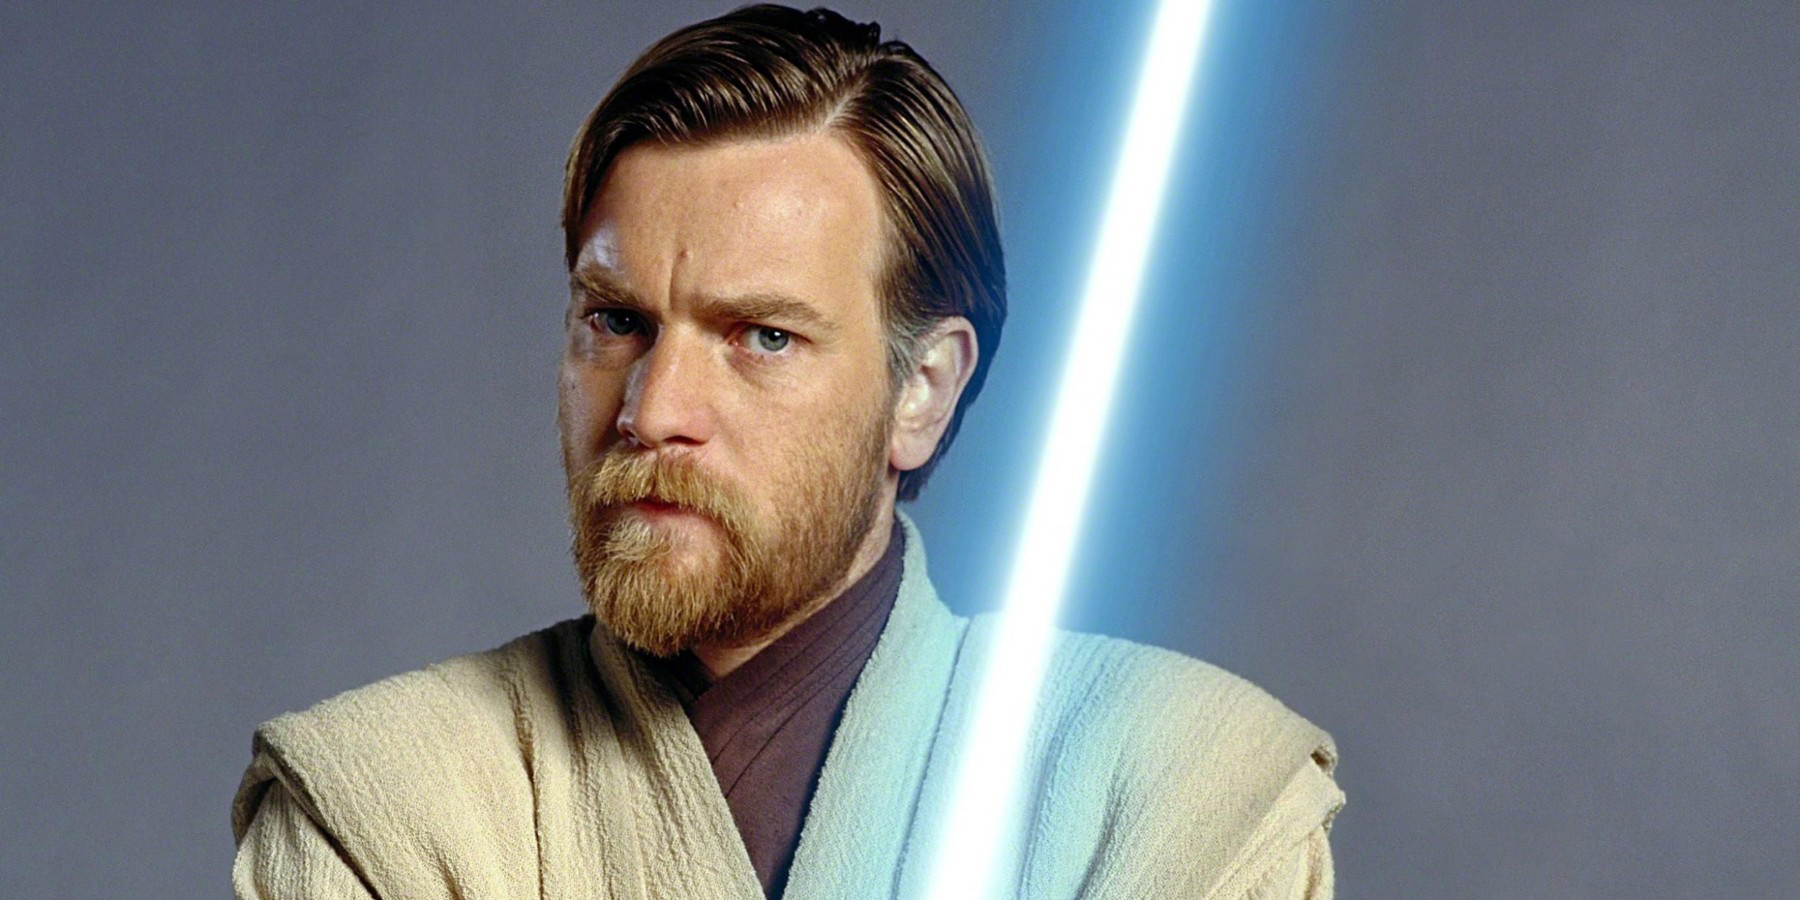 Ewan McGregor - Star Wars